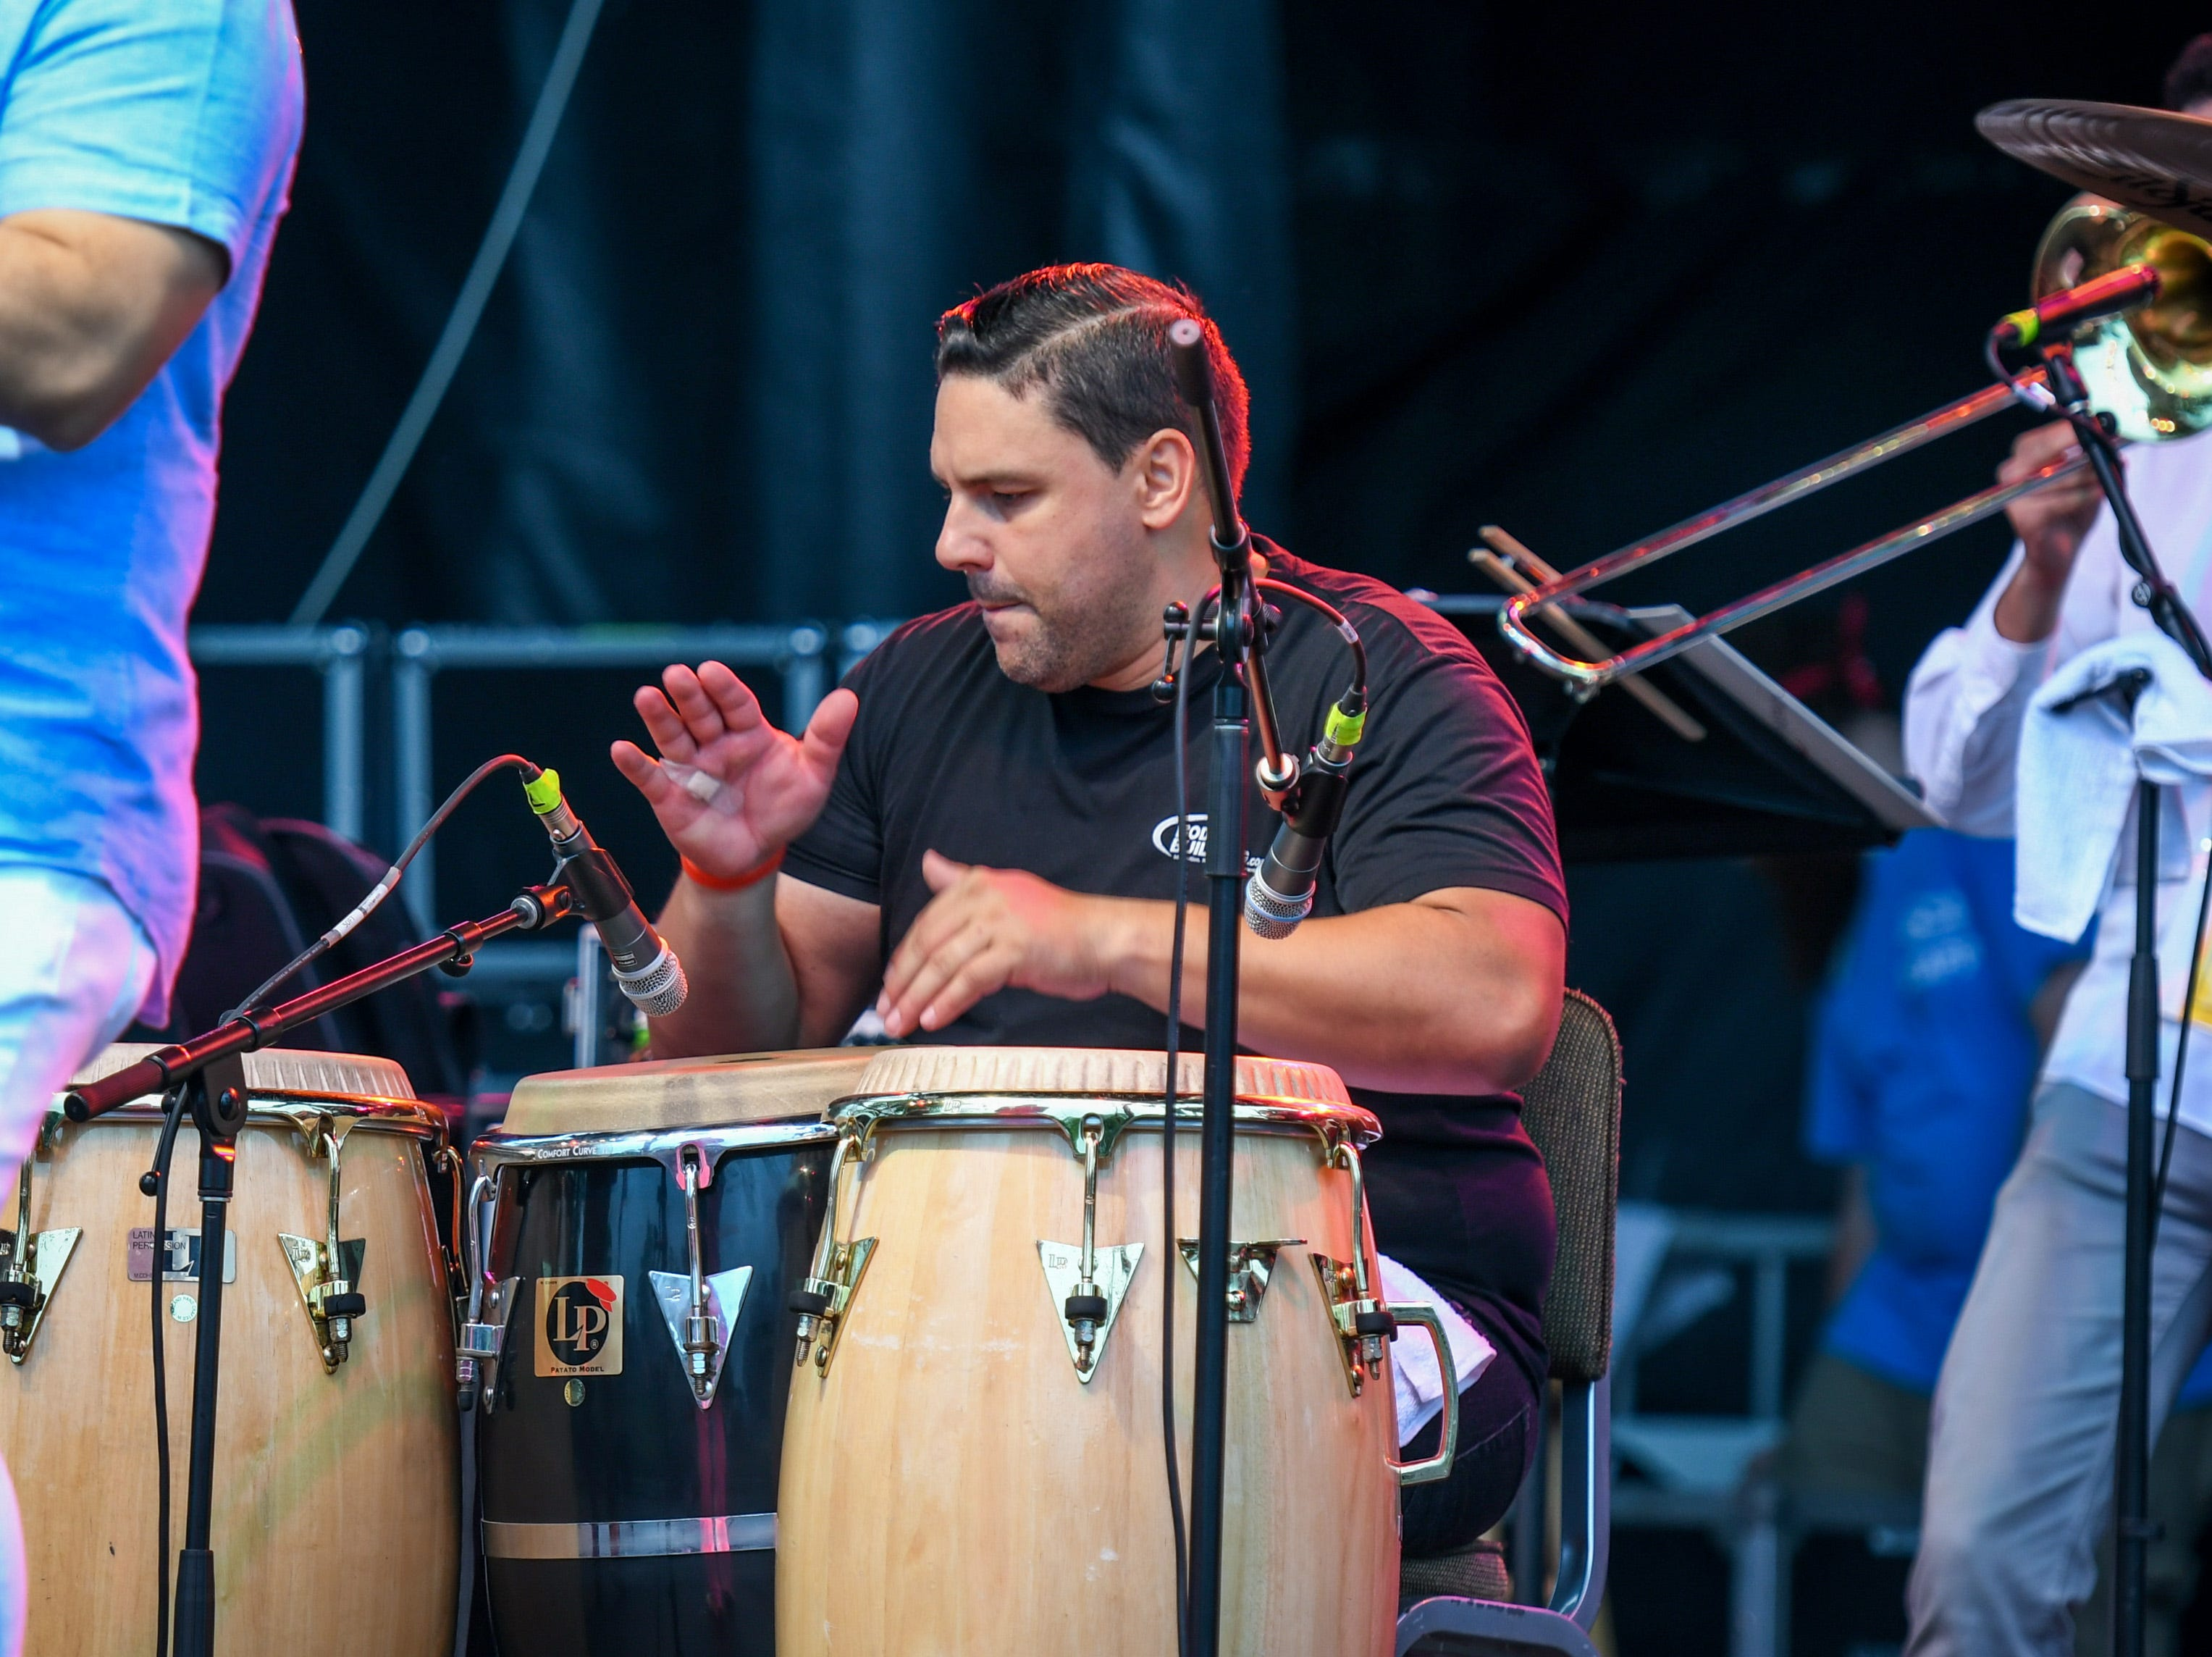 Orquesta SCC performs at the National Folk Festival in Salisbury on Saturday, Sept. 8.